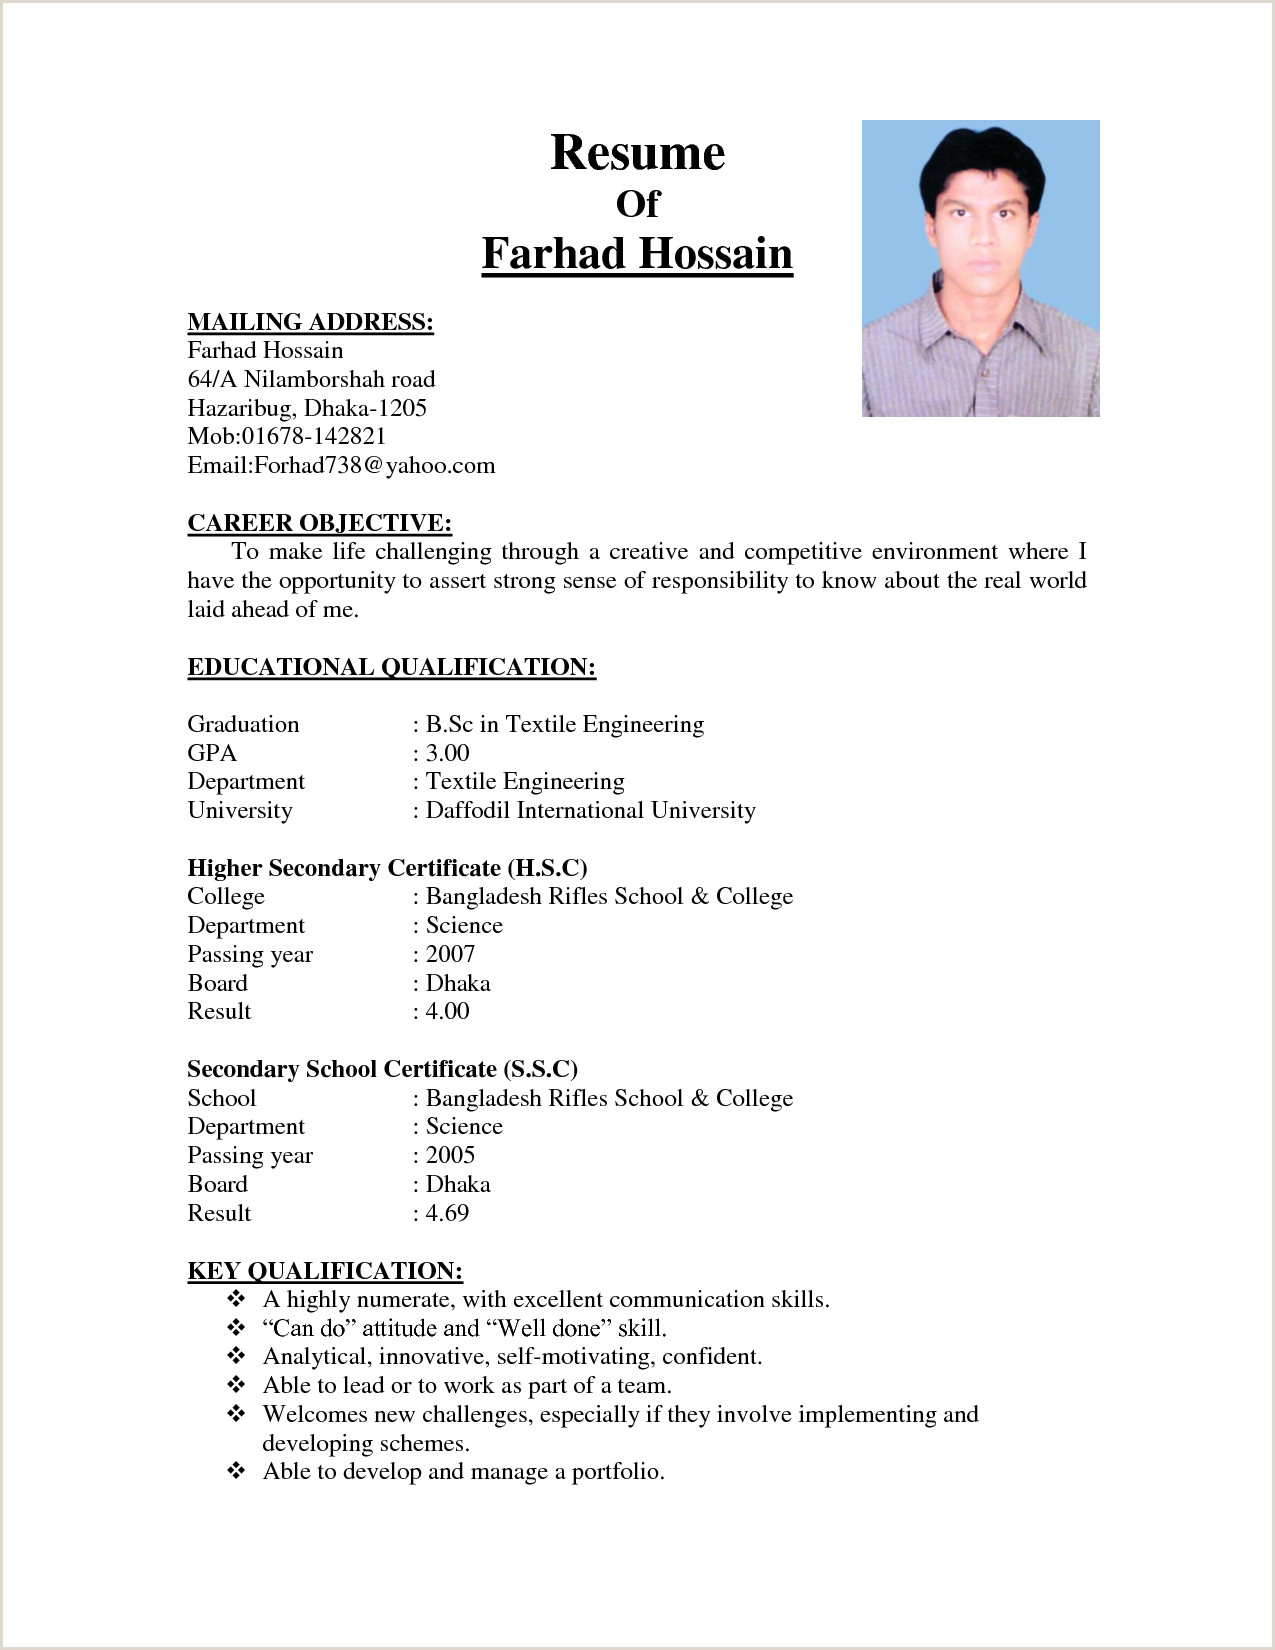 Cv format for Job In Educational Institutions Cv Template Bangladesh Cv format